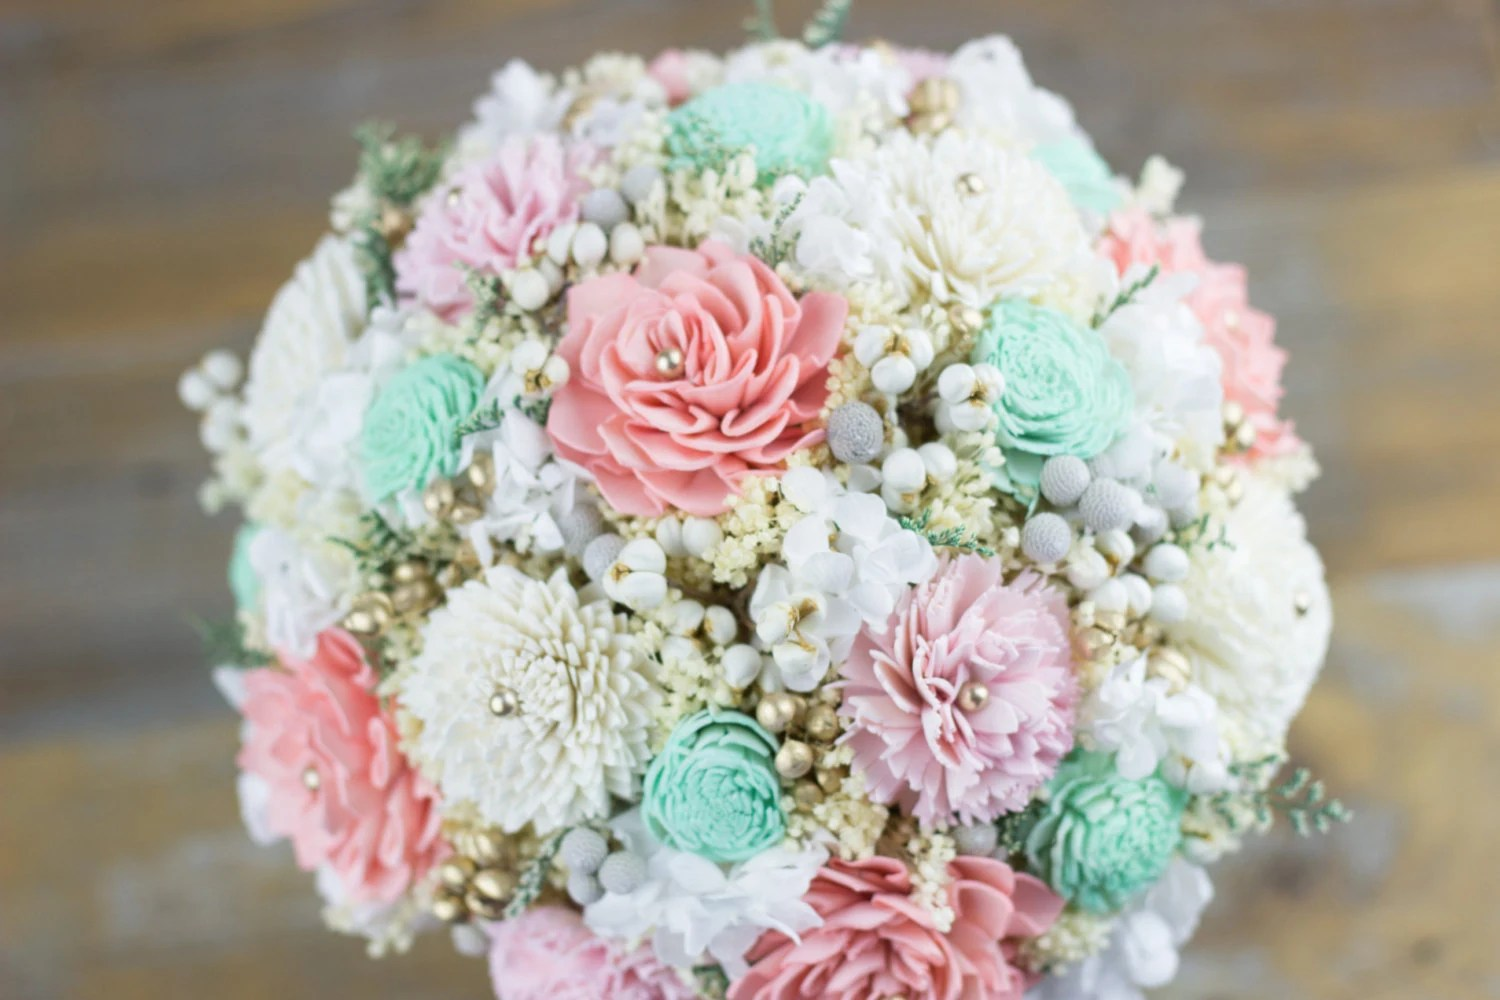 Bridal BouquetWoodland Bridal BouquetPink/Baby Pink/Mint